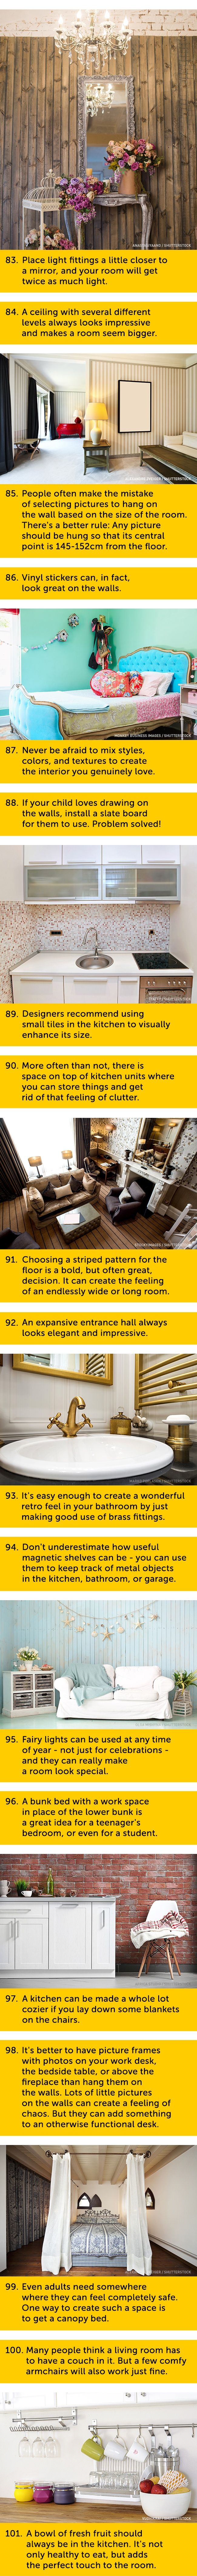 Everything you'll ever need to know about creating the perfect home, all in one place. 101 interior decorating ideas and tips